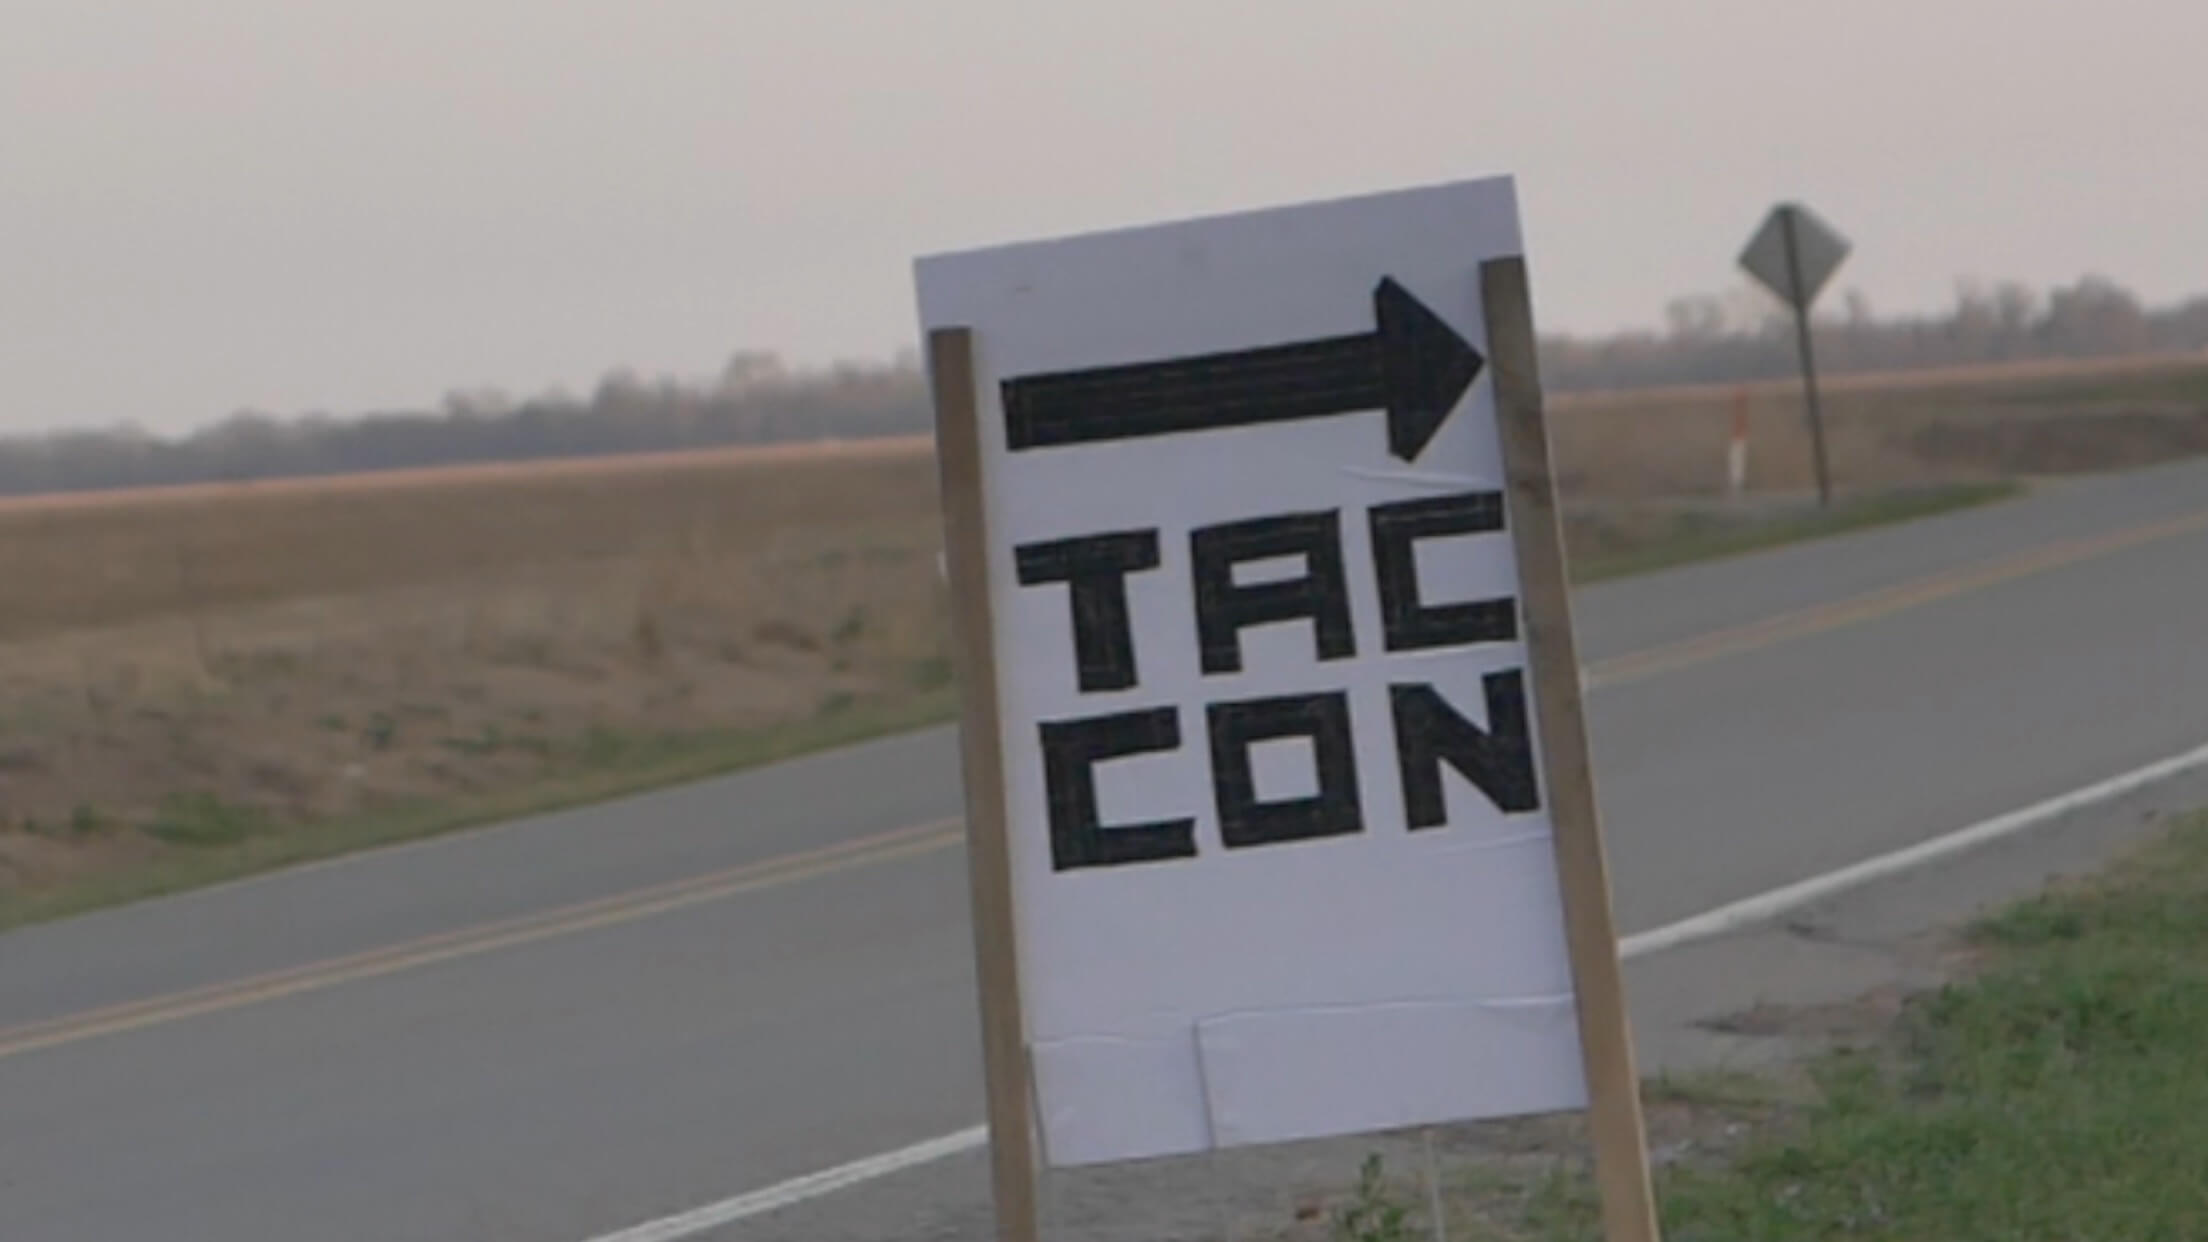 MagFIX at Tac-Con